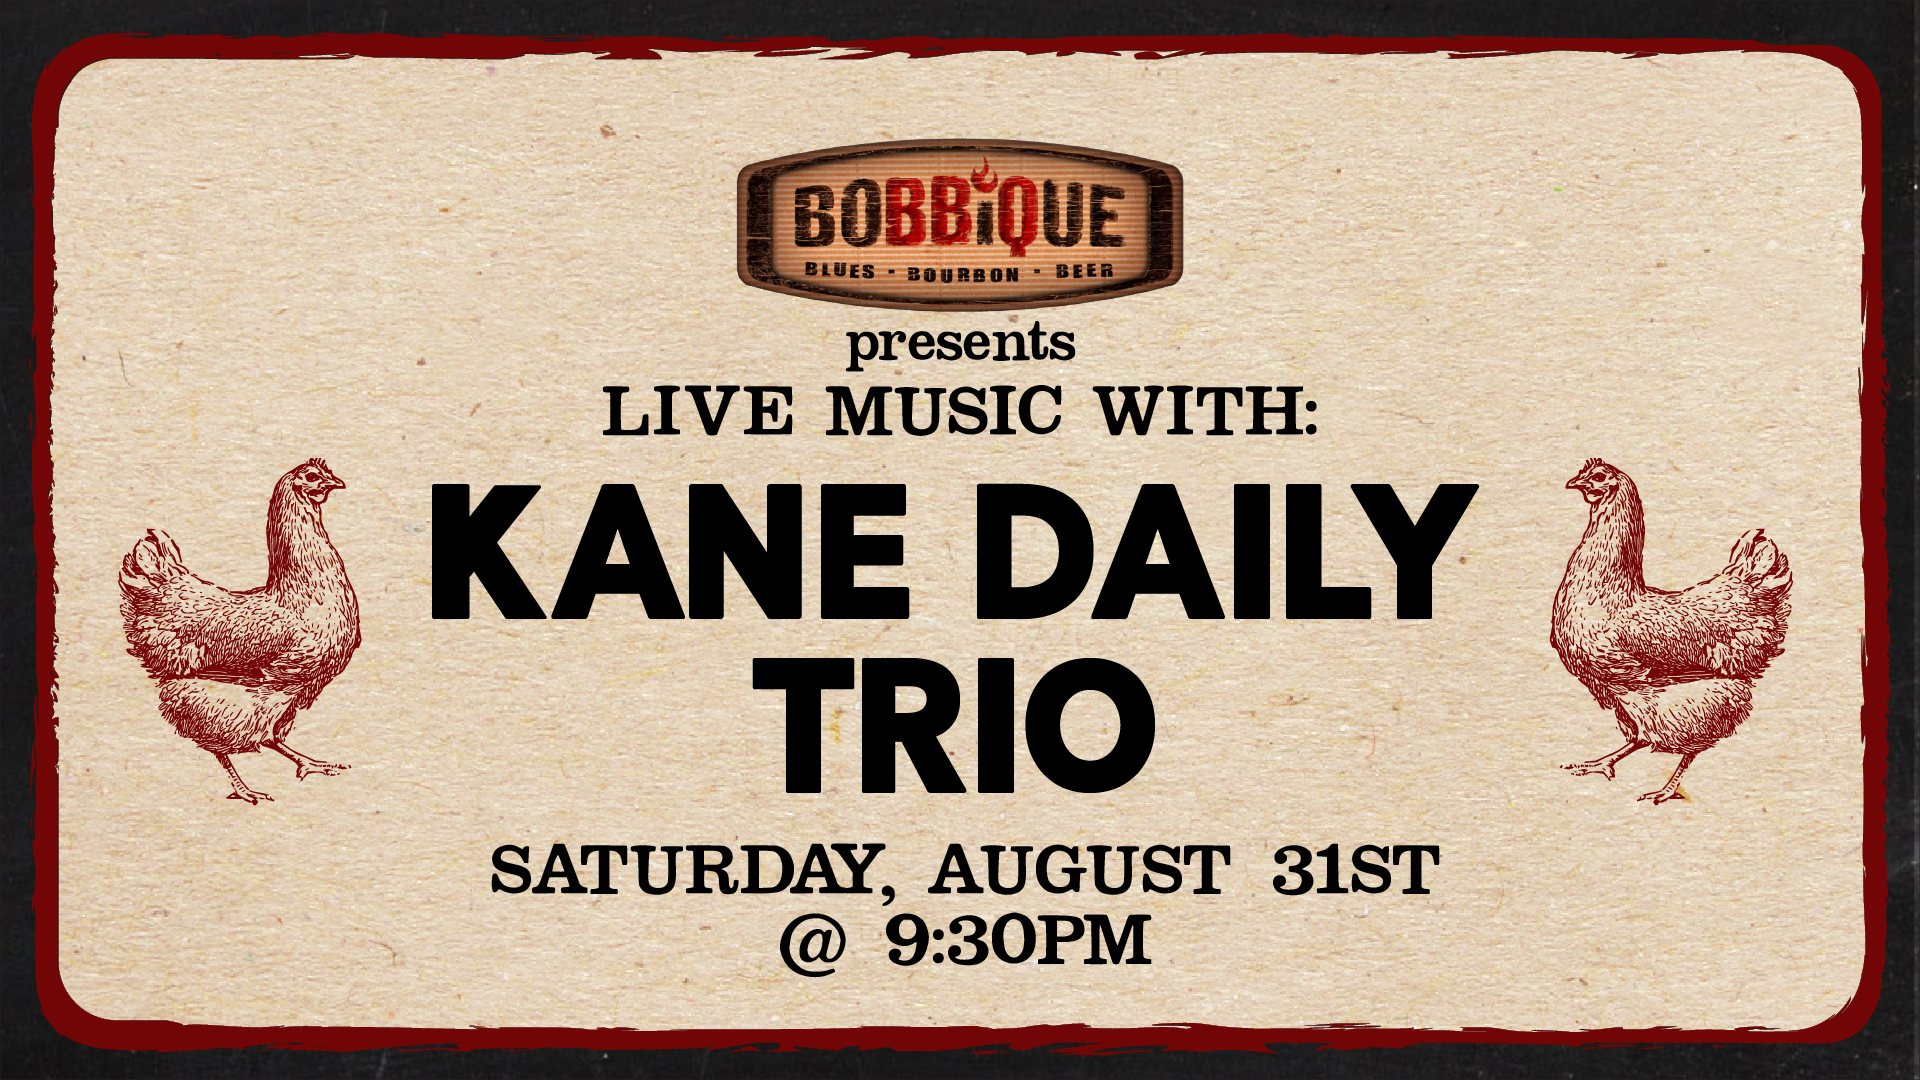 Live Music with Kane Daily Trio